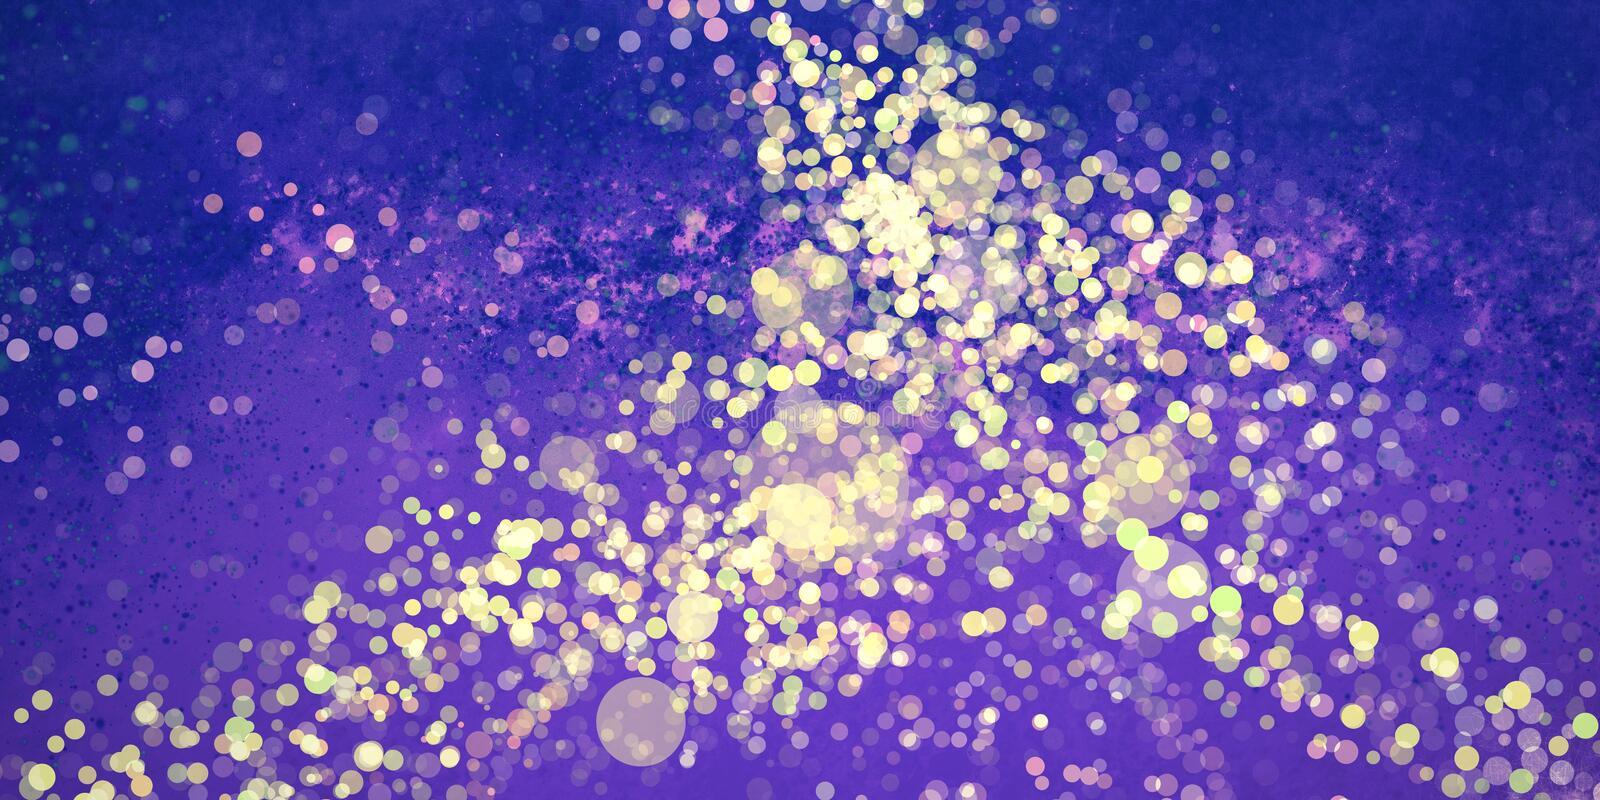 Abstract purple blue and yellow gold background design with paint spatter and bokeh lights texture. Elegant background, magical dream concept royalty free illustration